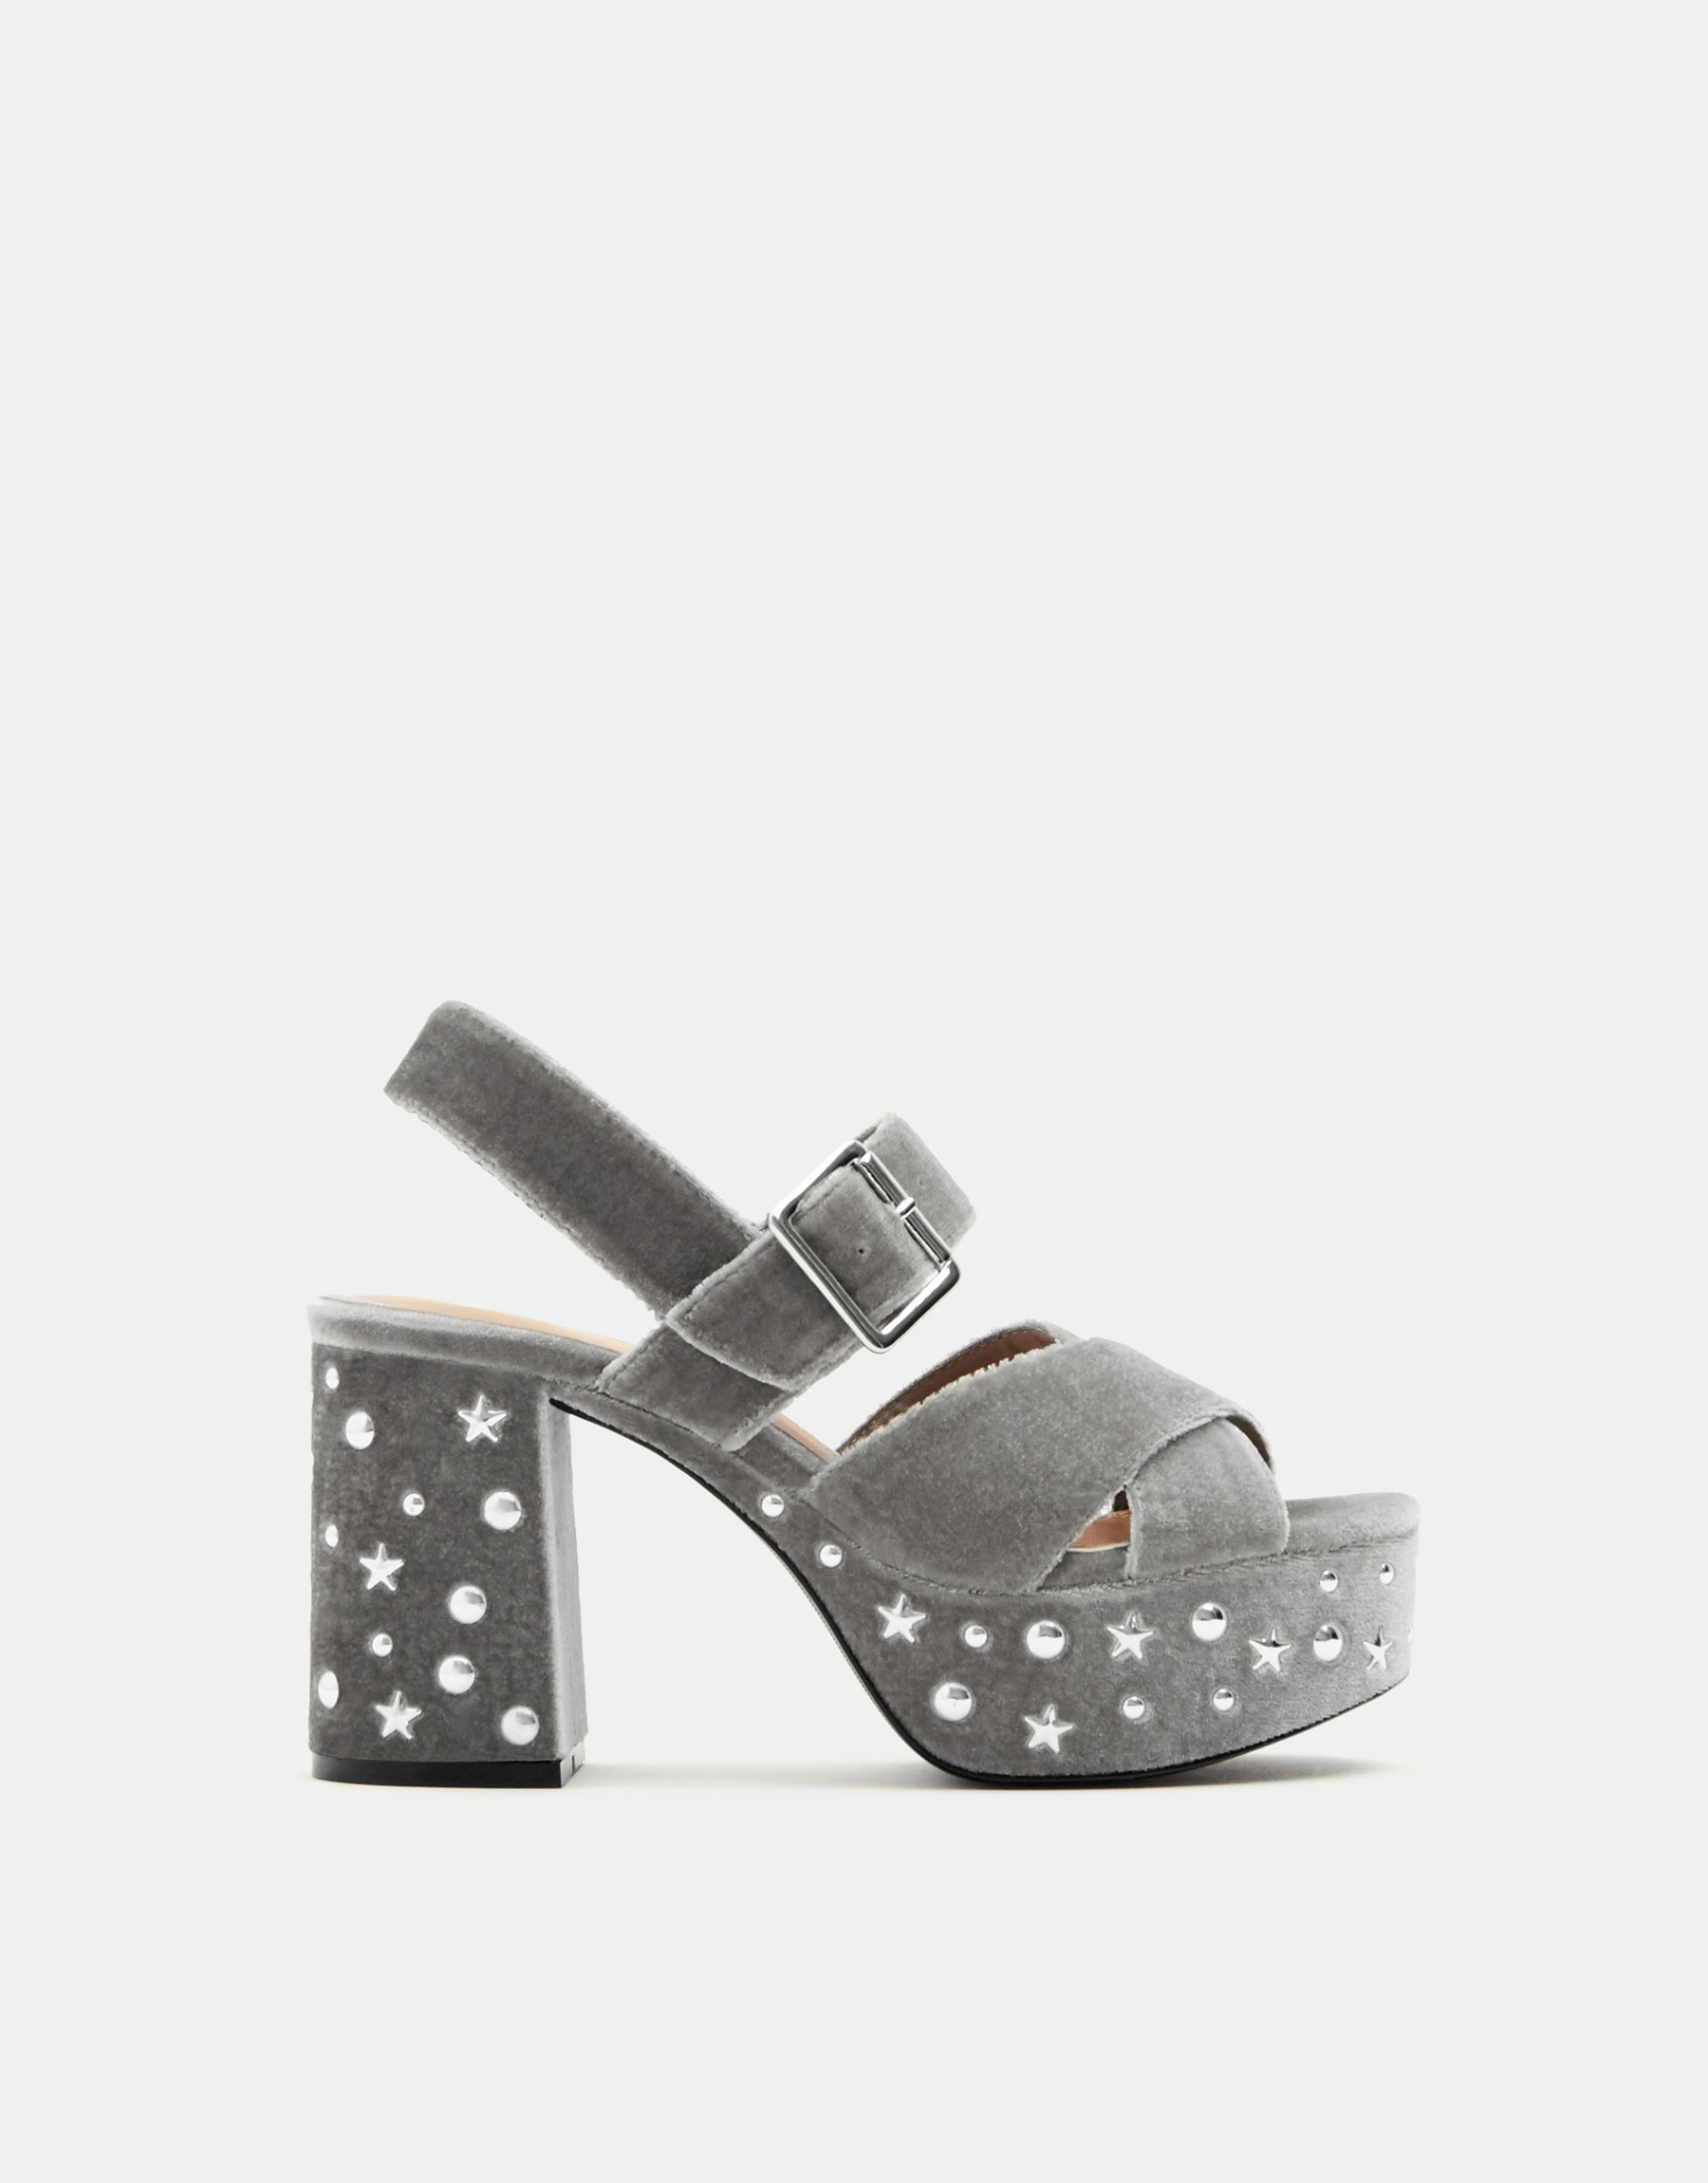 High heel sandals with star and moon studs